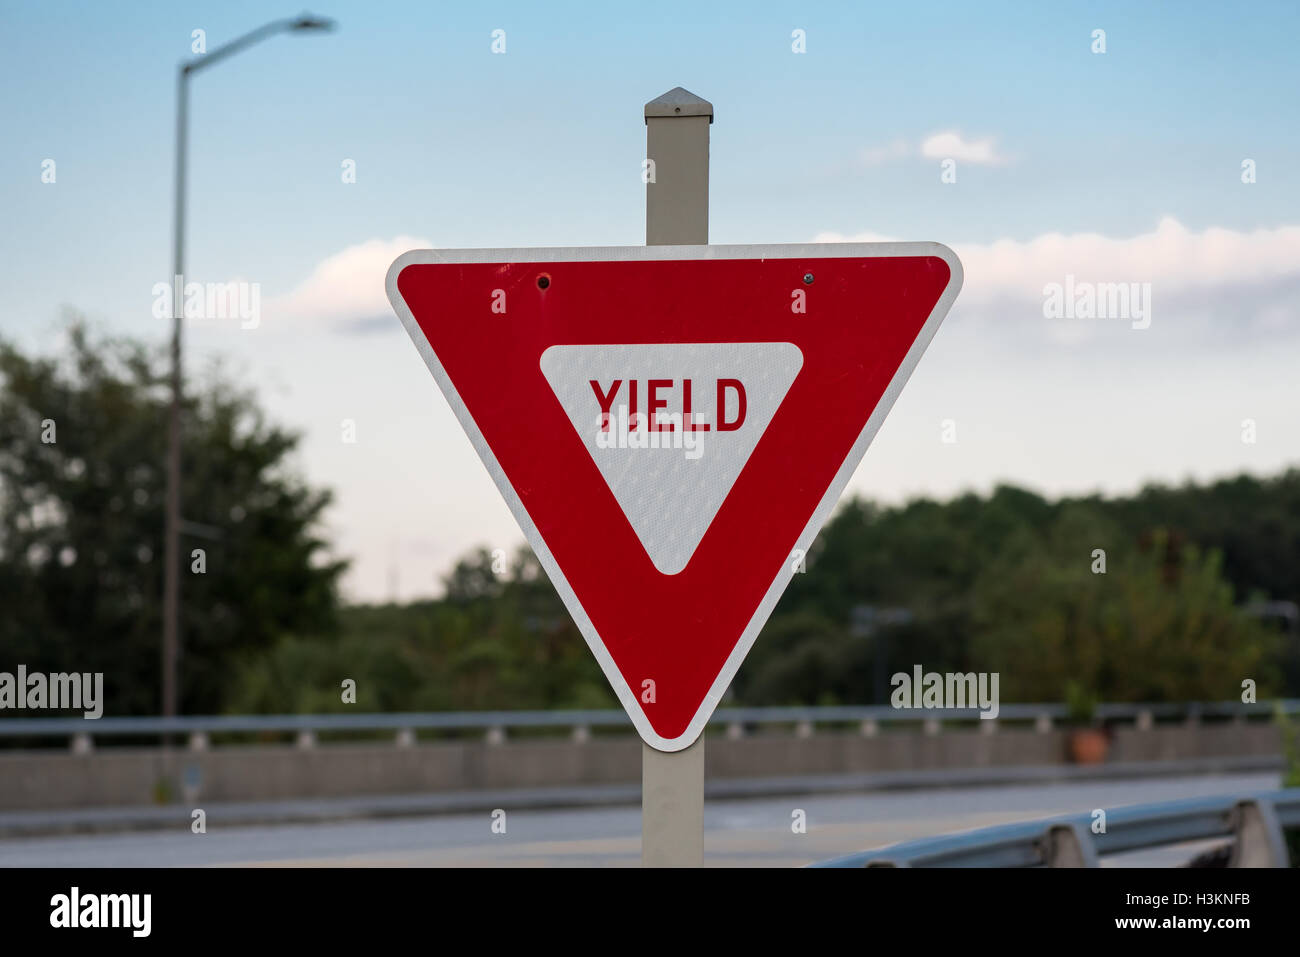 Yield Sign on Bridge in red instead of yellow - Stock Image